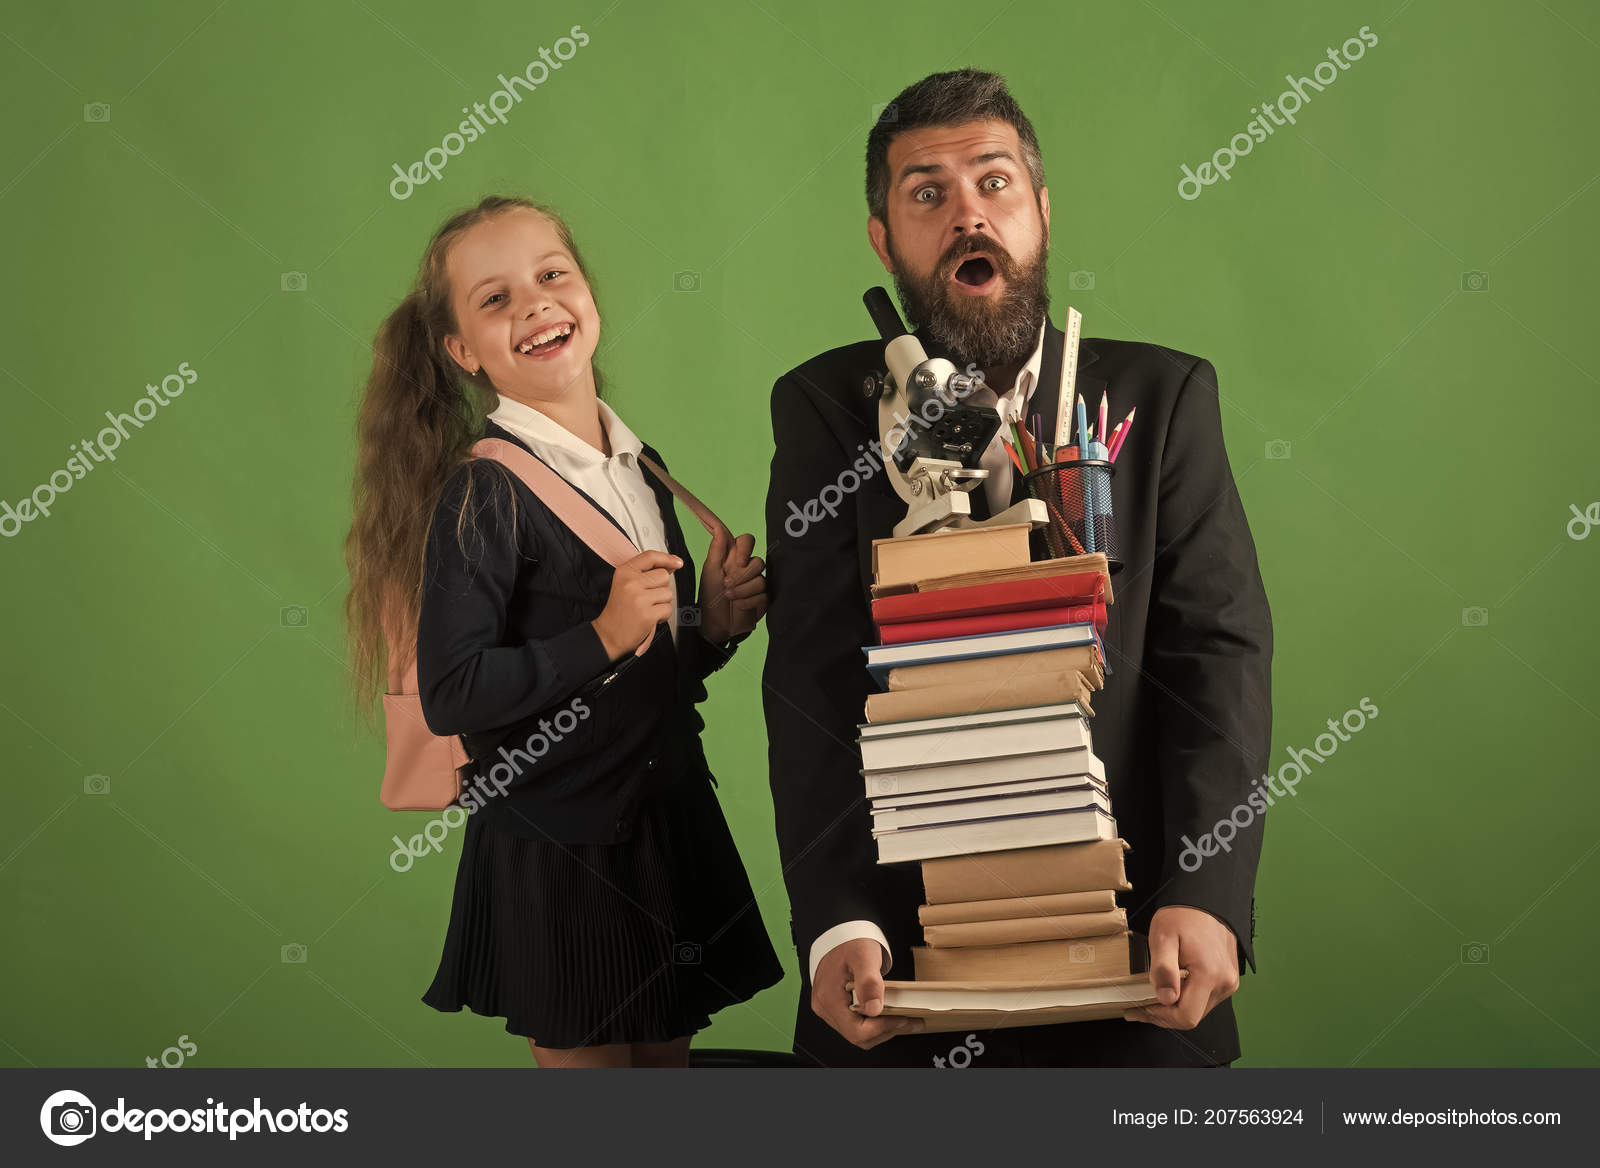 Teacher And Schoolgirl With Shocked And Happy Faces Stock Photo